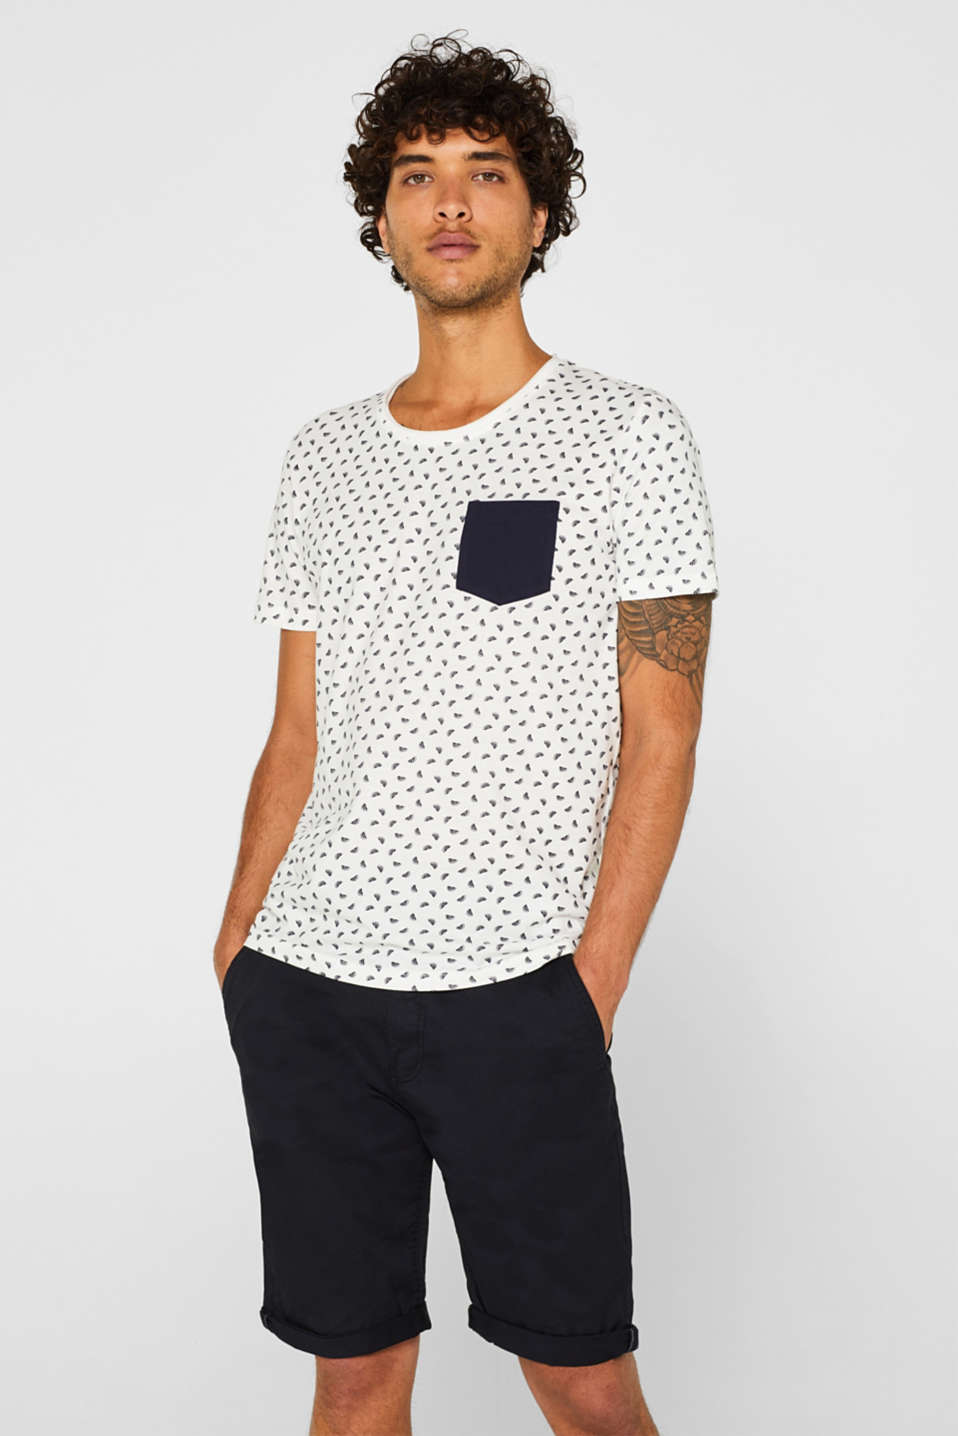 Jersey top with an all-over print, 100% cotton